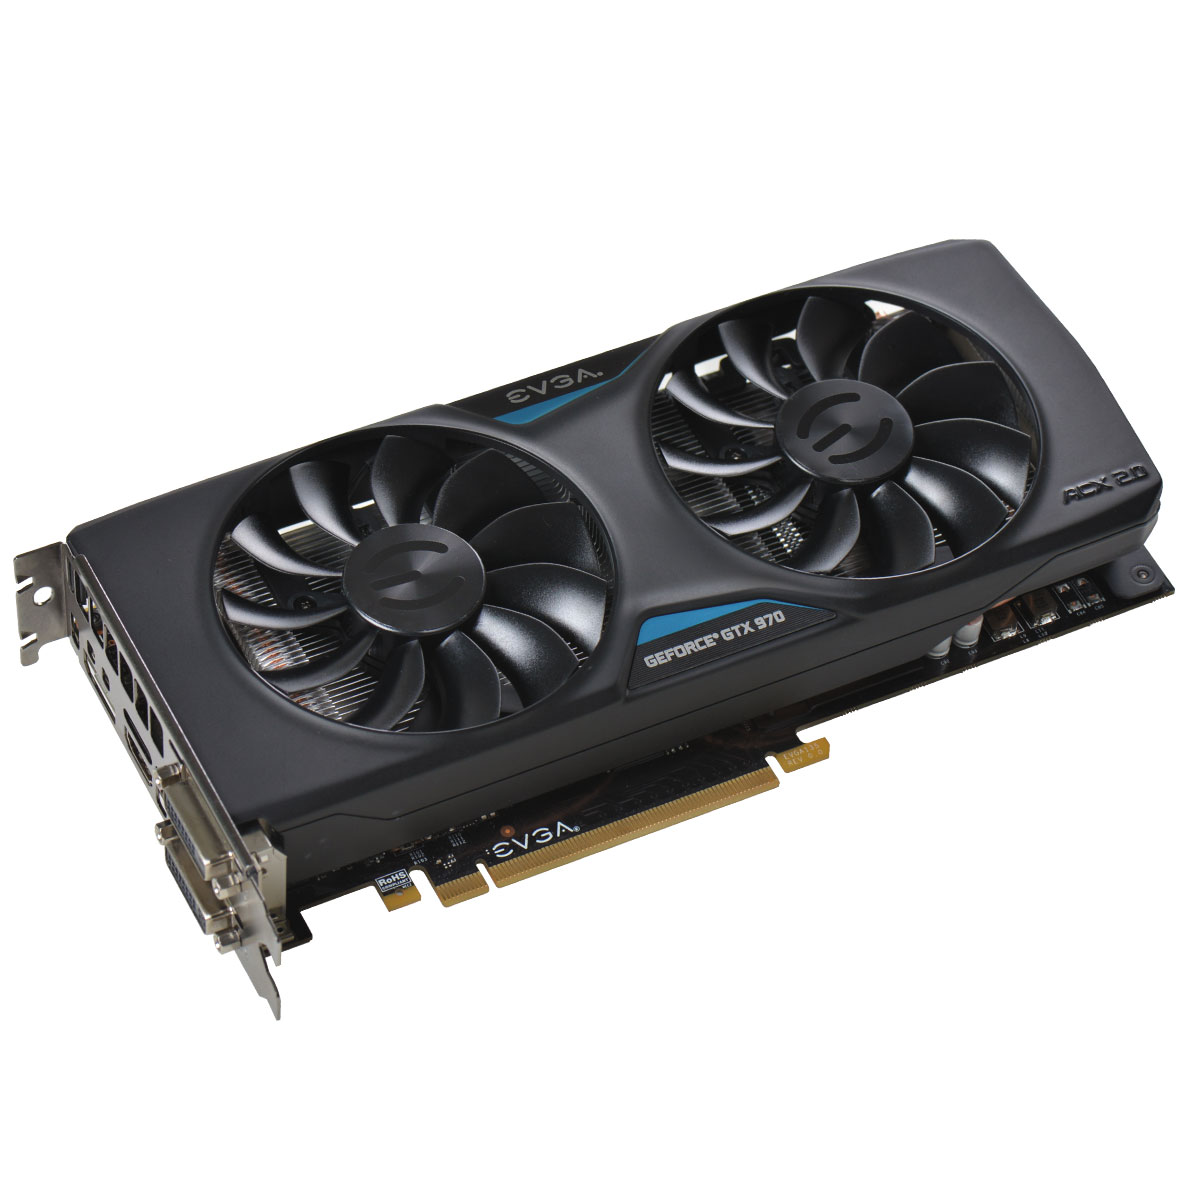 EVGA 04GP42974KR GeForce GTX 970 4GB 256-Bit GDDR5 PCI Express 3.0 SLI Support Video Card